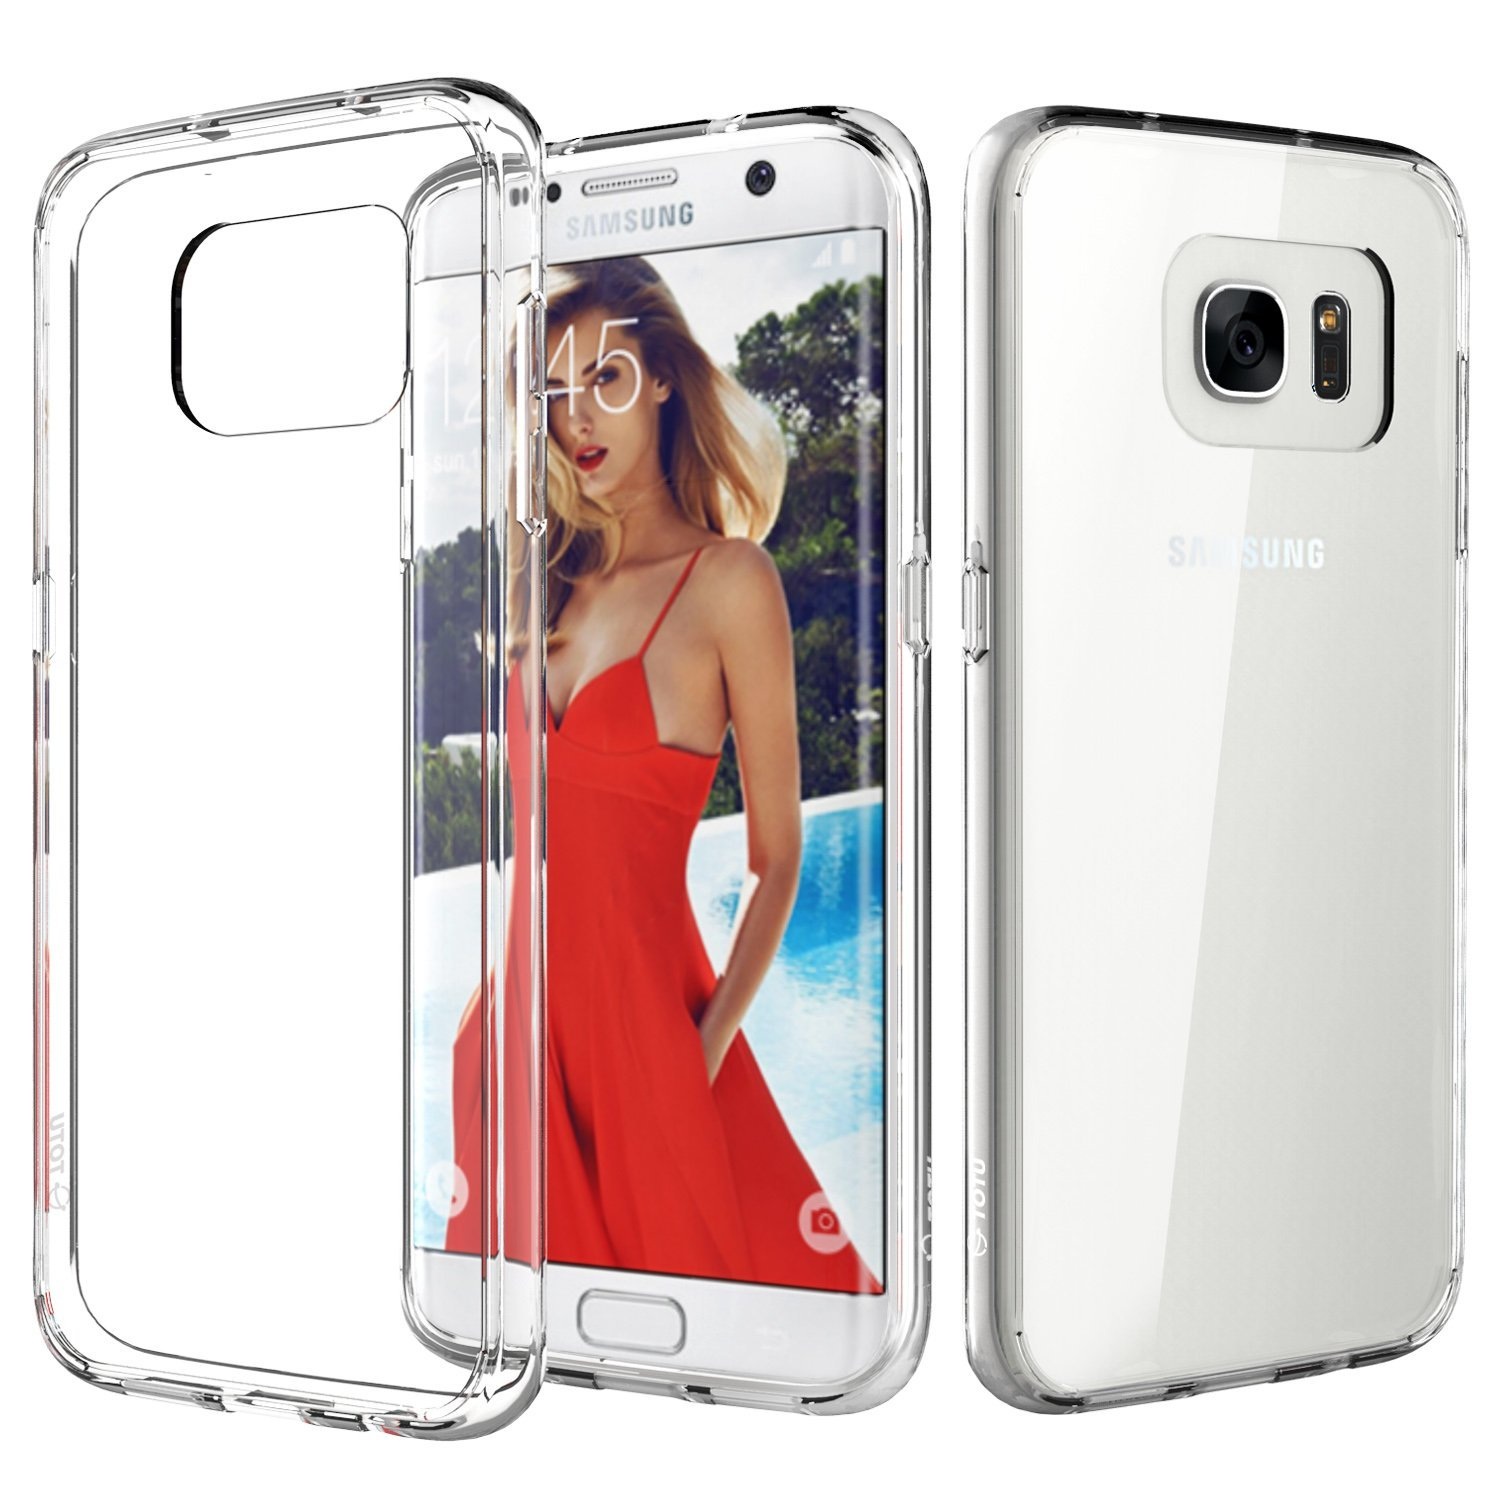 Galaxy S7 Edge Case TOTU [Crystal Clear] TPU Grip Bumper Transparent Back